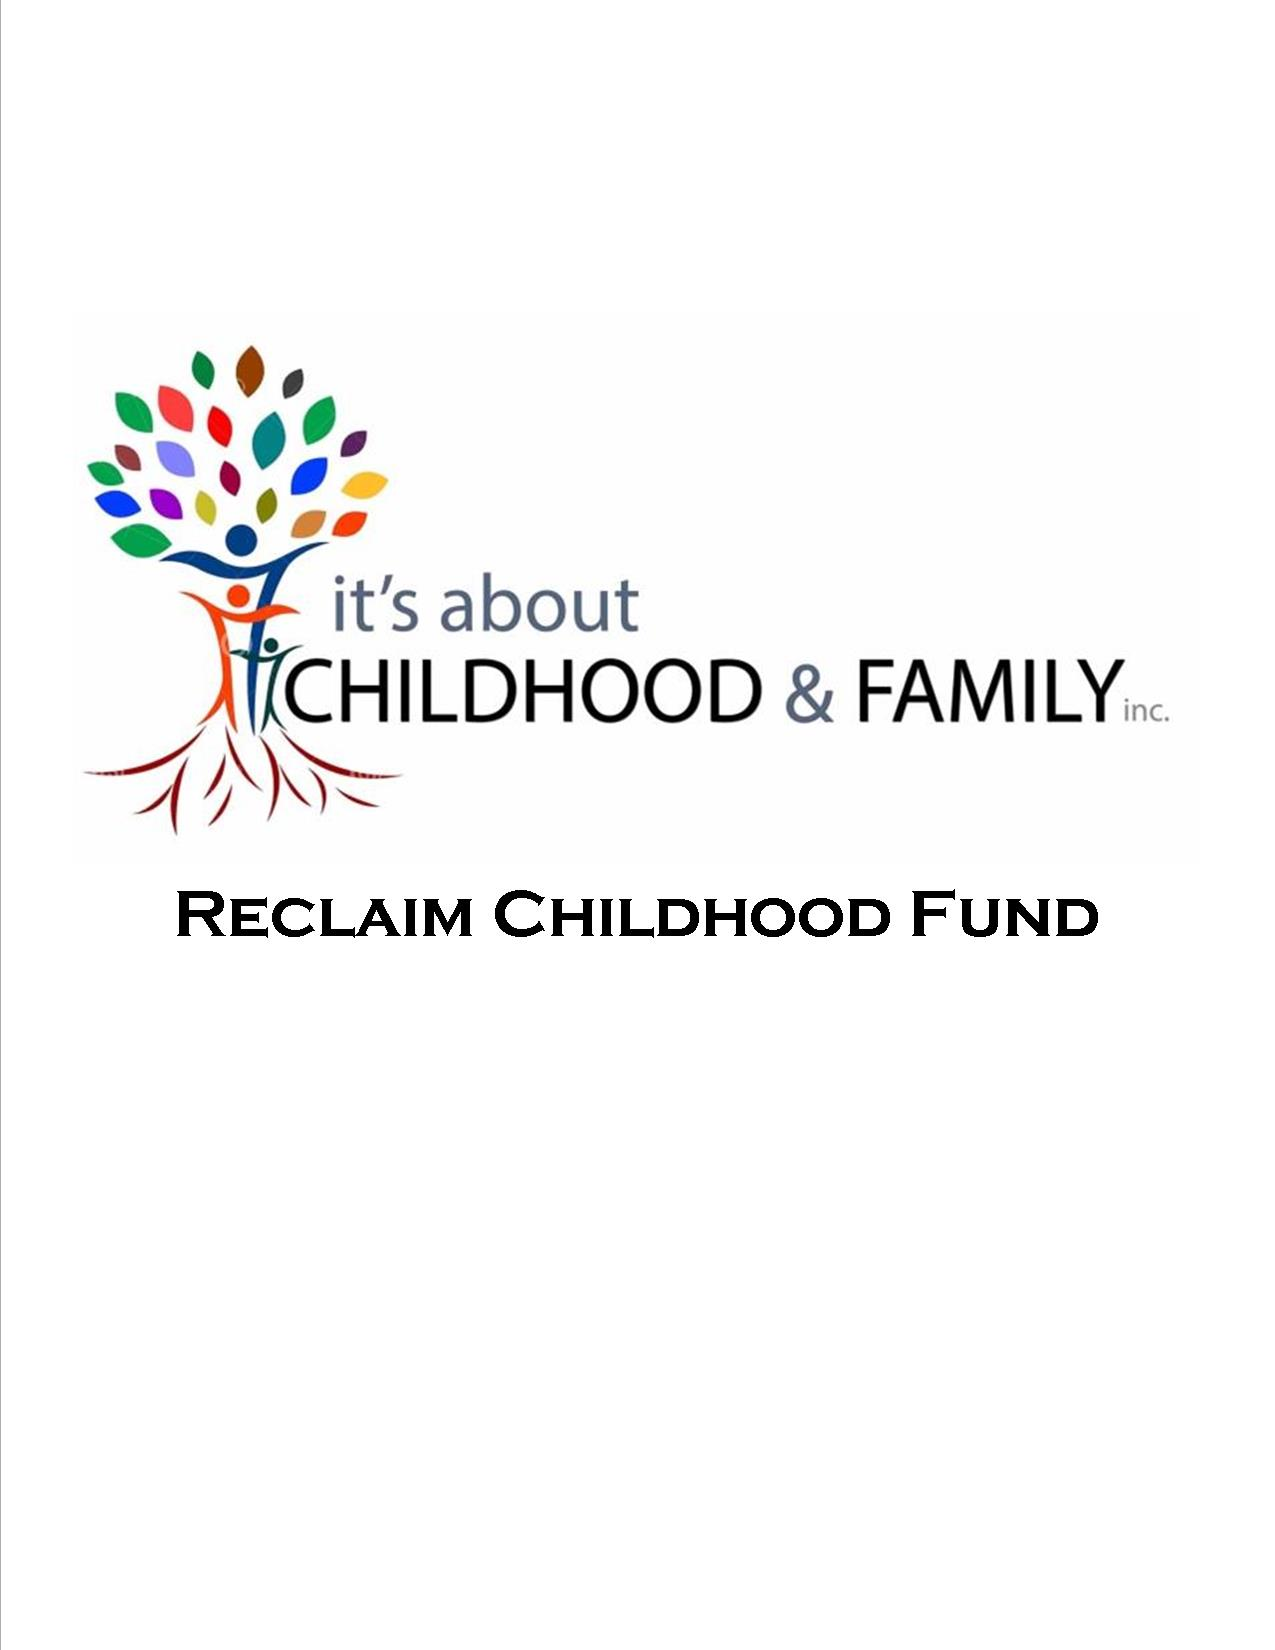 Reclaim Childhood Fund